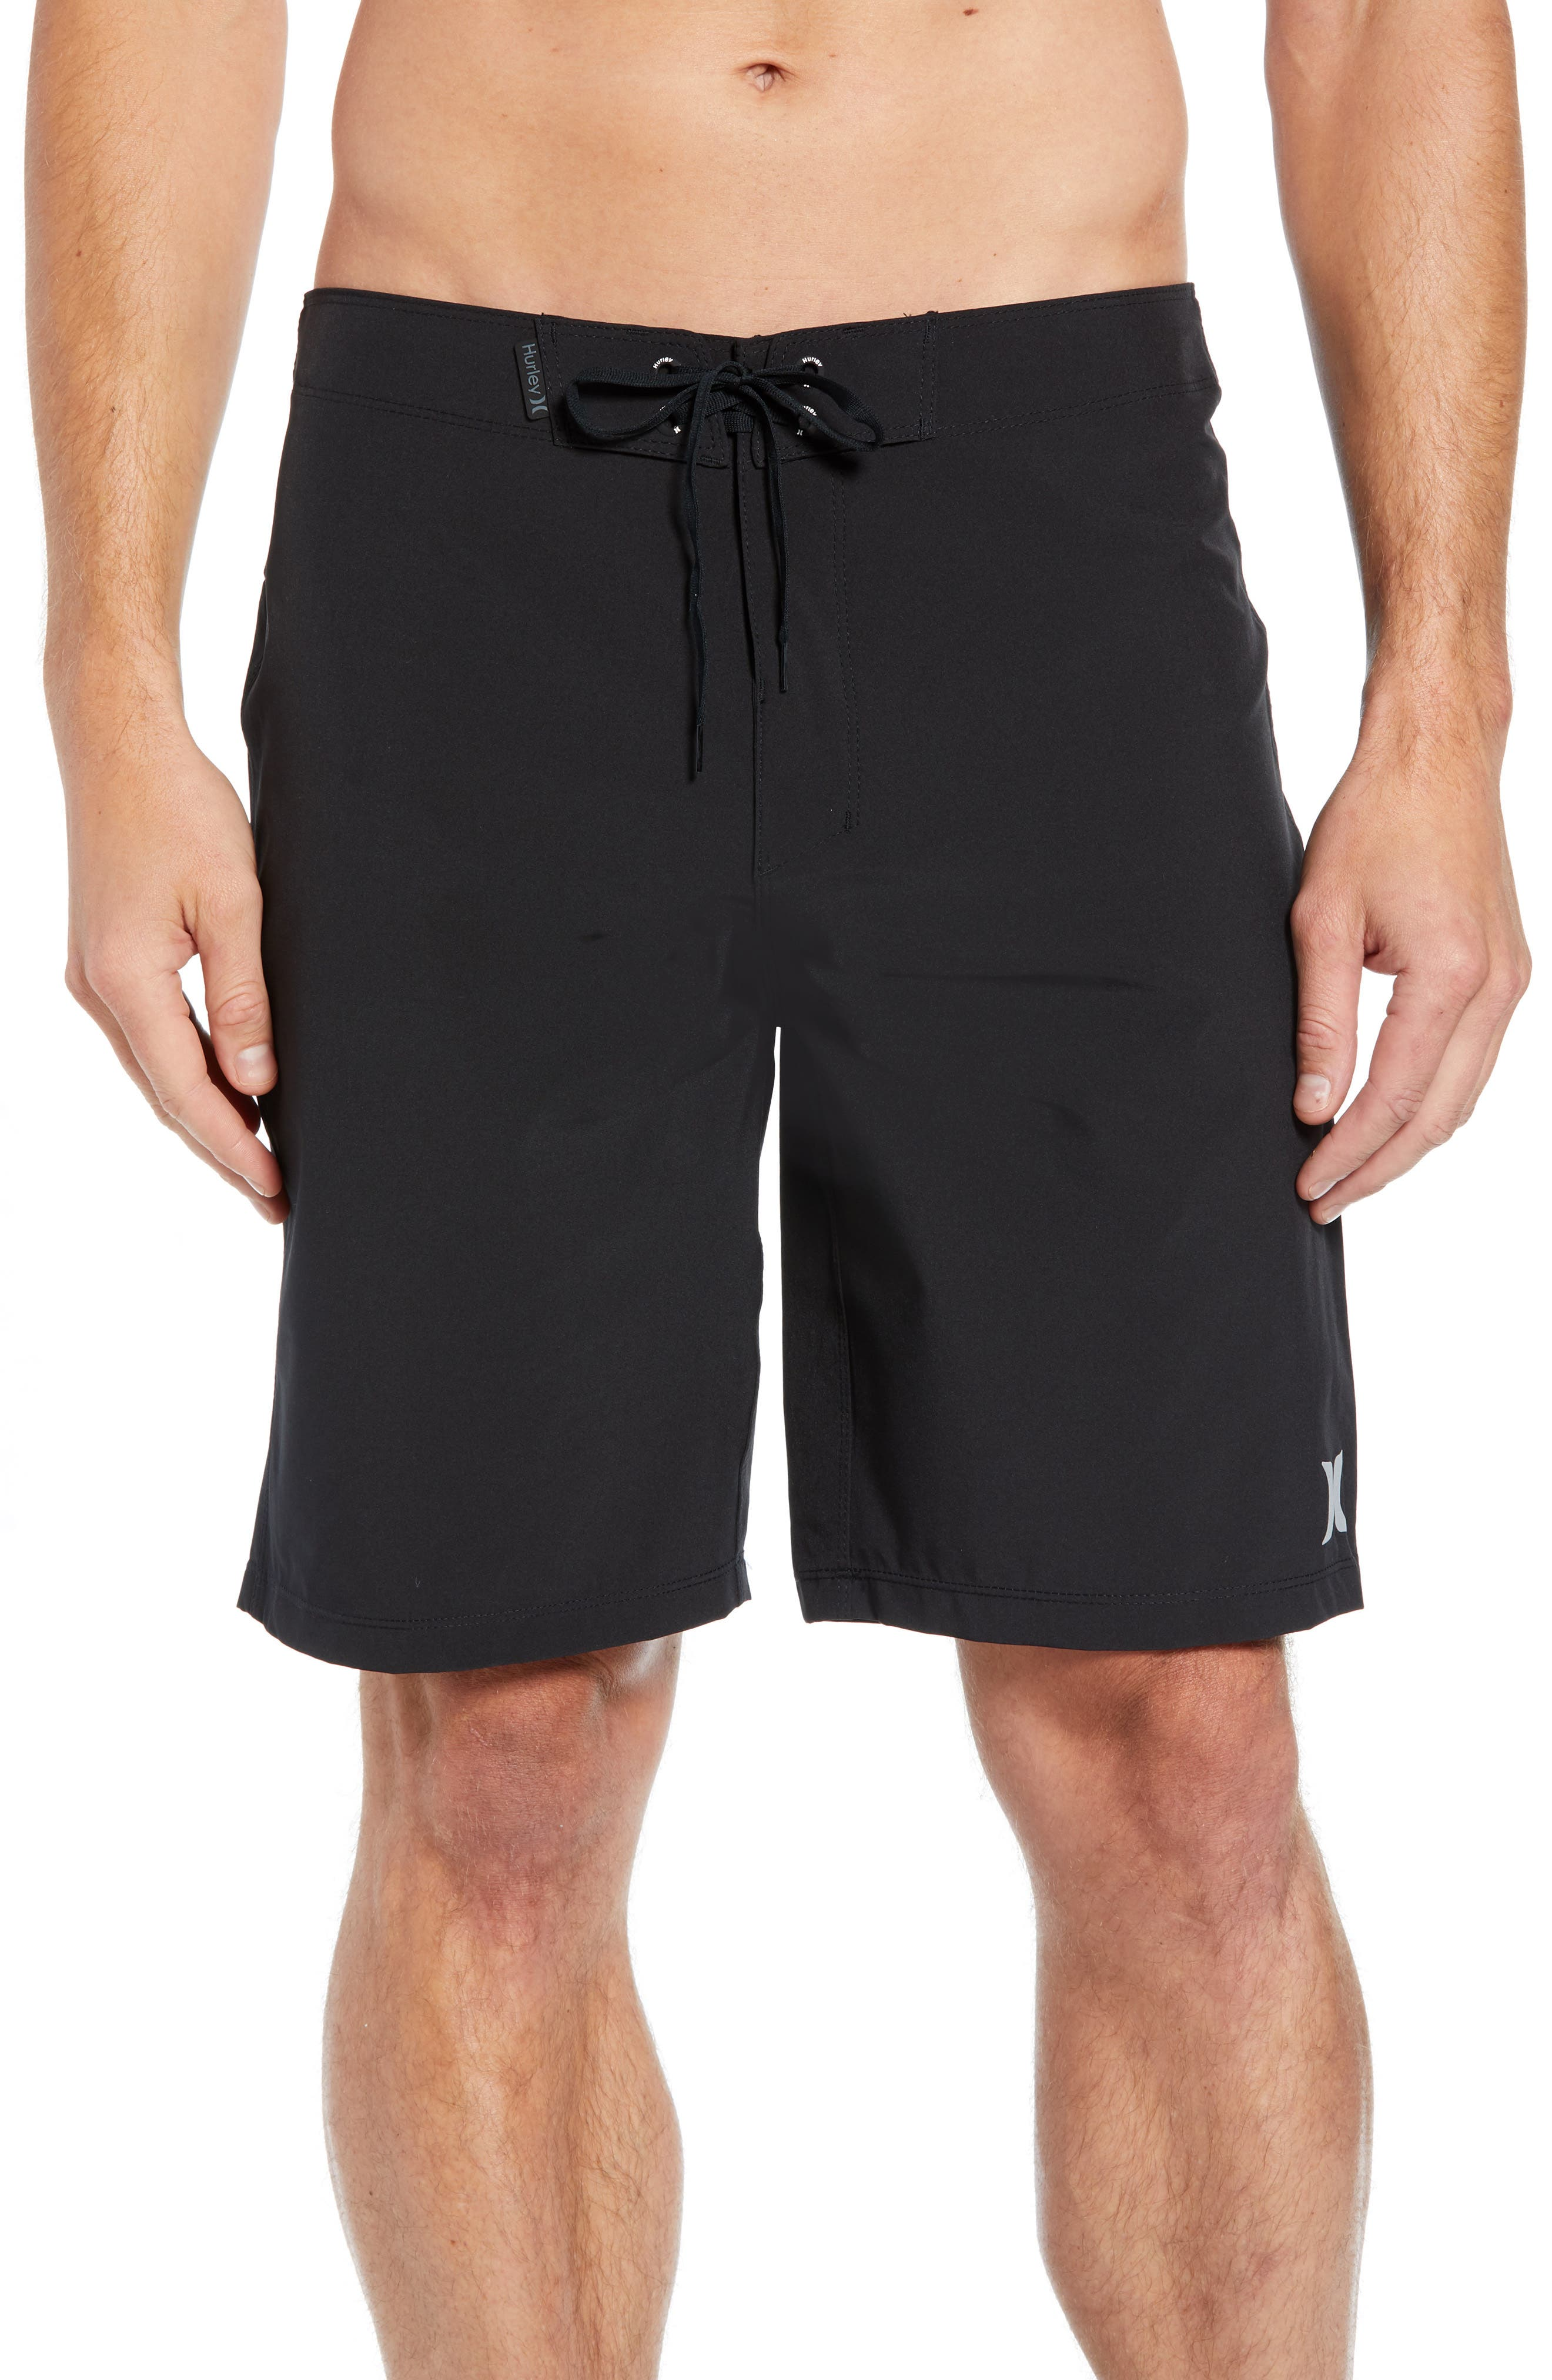 Hurley Phantom One And Only Board Shorts, Black